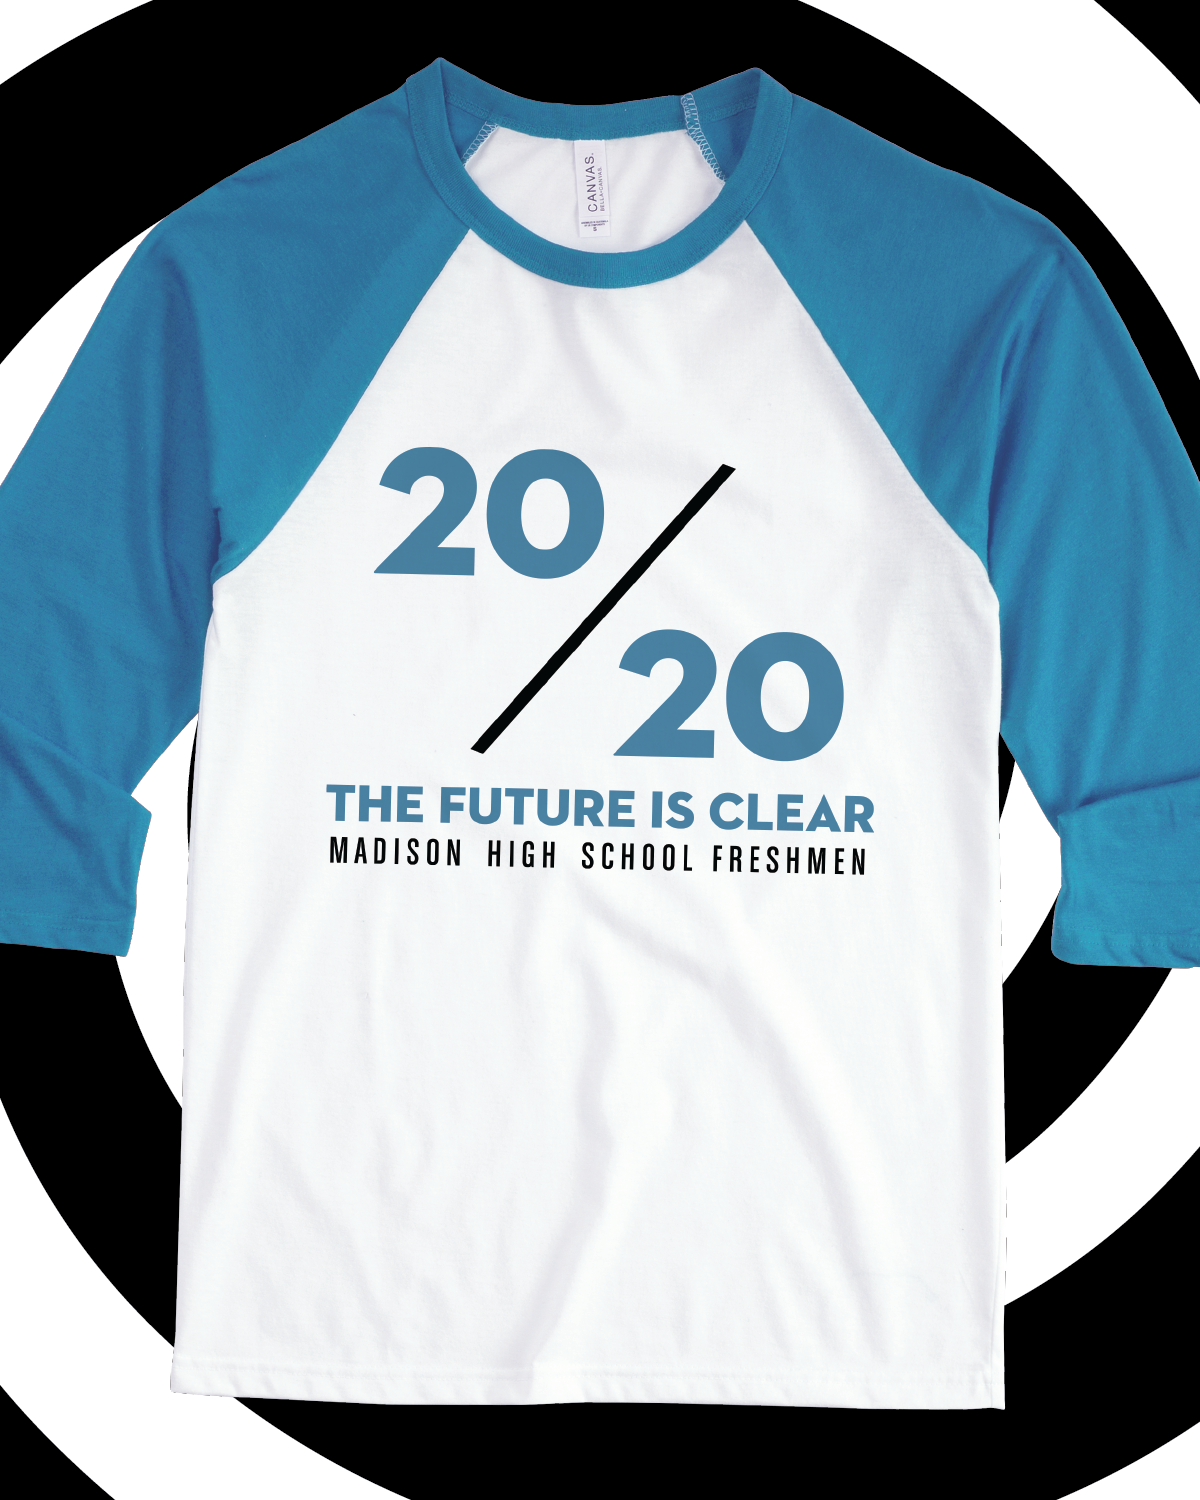 63f136d18 20/20 The Future is Clear class of 2020 raglan - design idea for custom  shirt - class shirt, graduation, class pride, school pride, school spirit,  seniors, ...